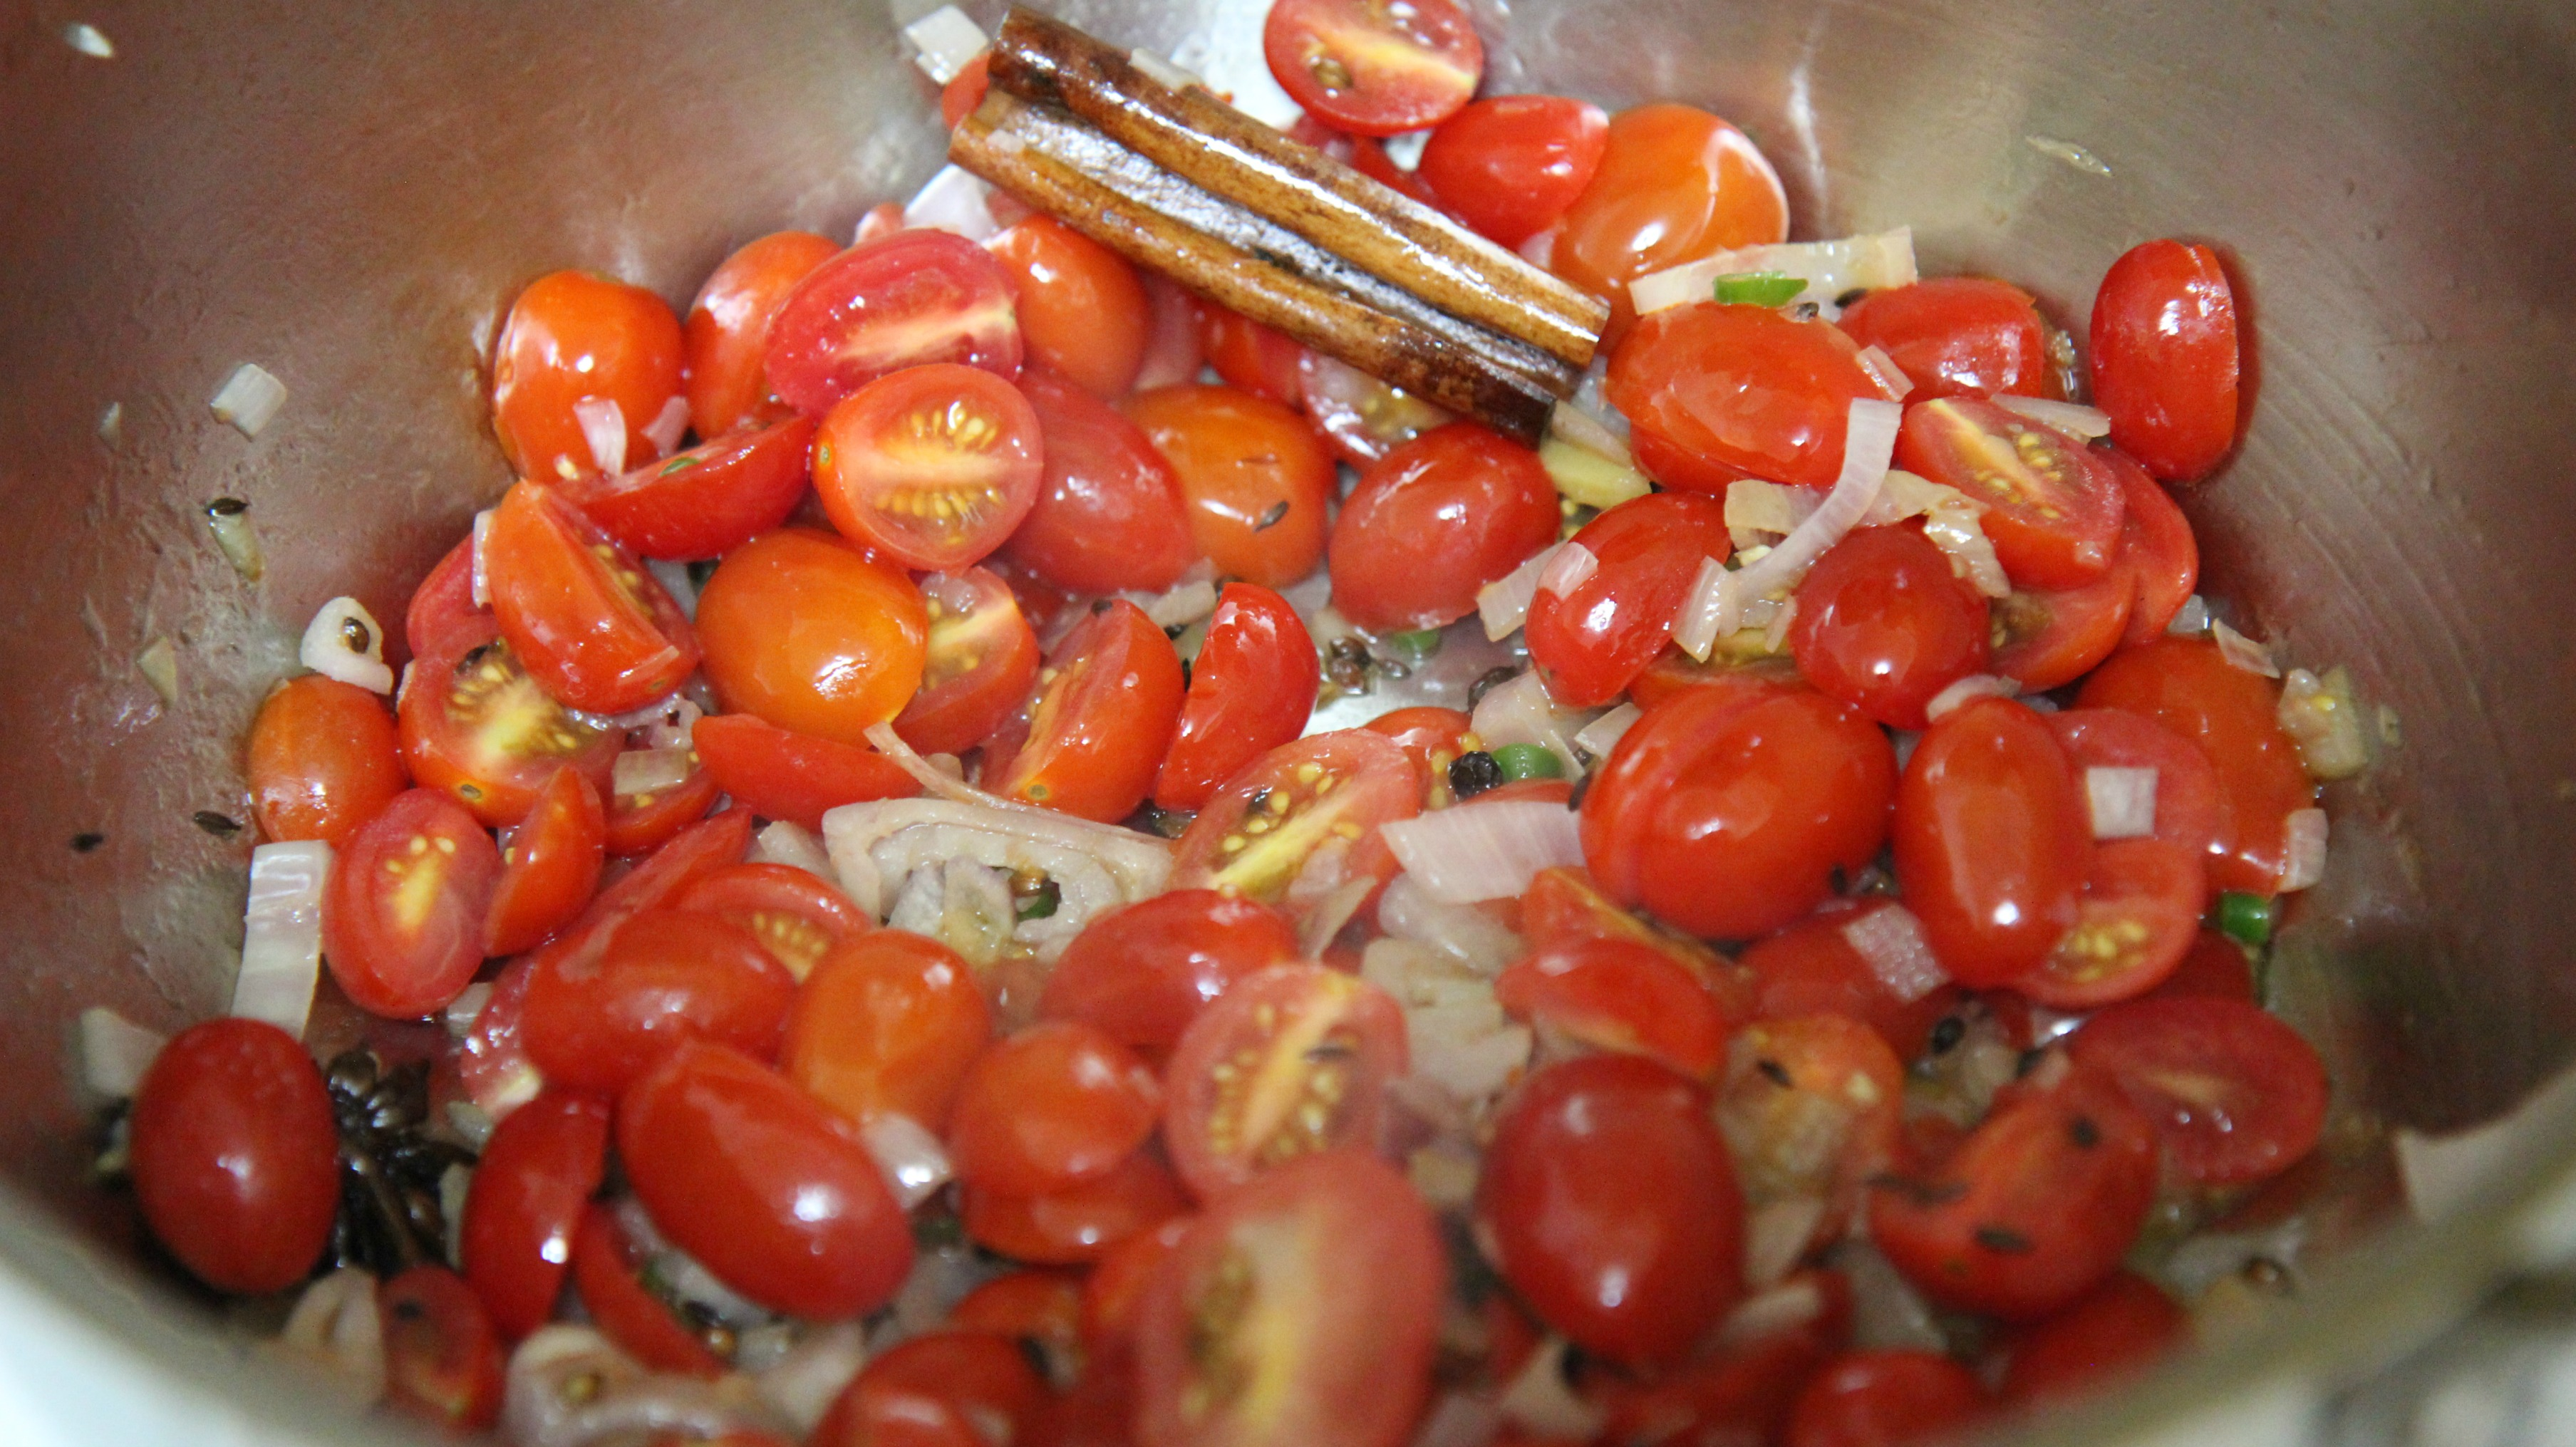 Sauce the veggies before blending them.